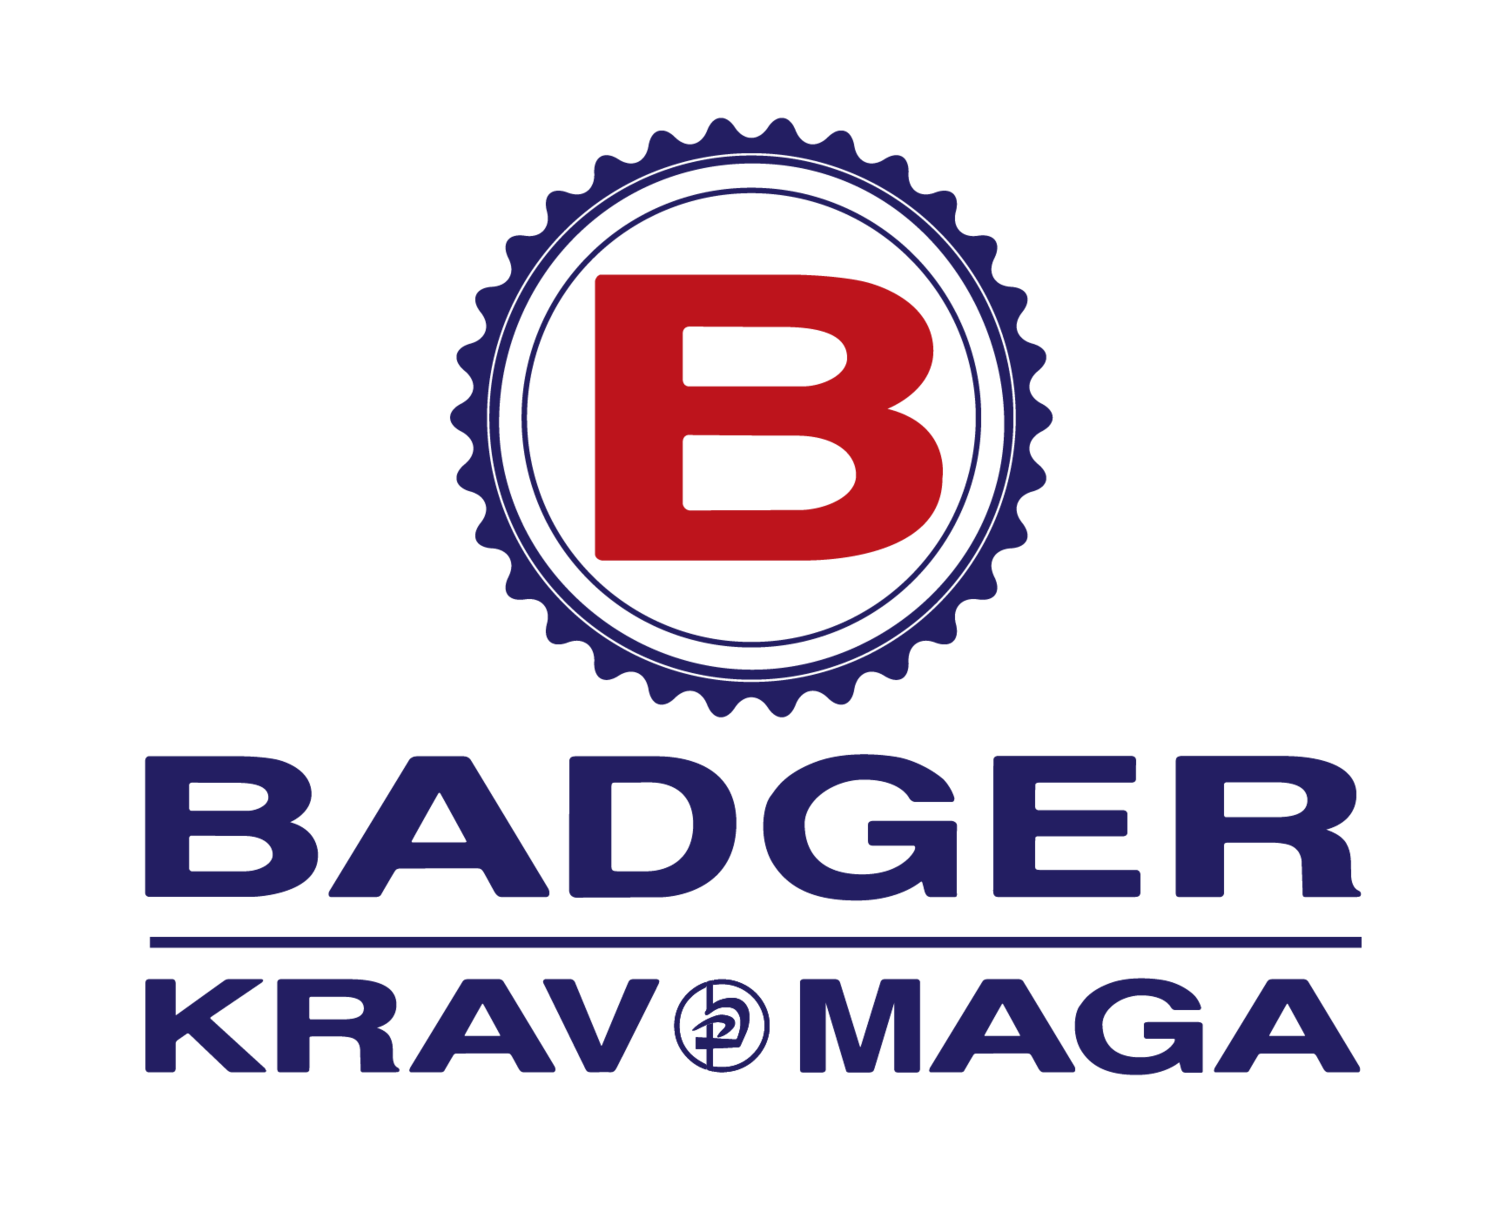 Badger krav maga